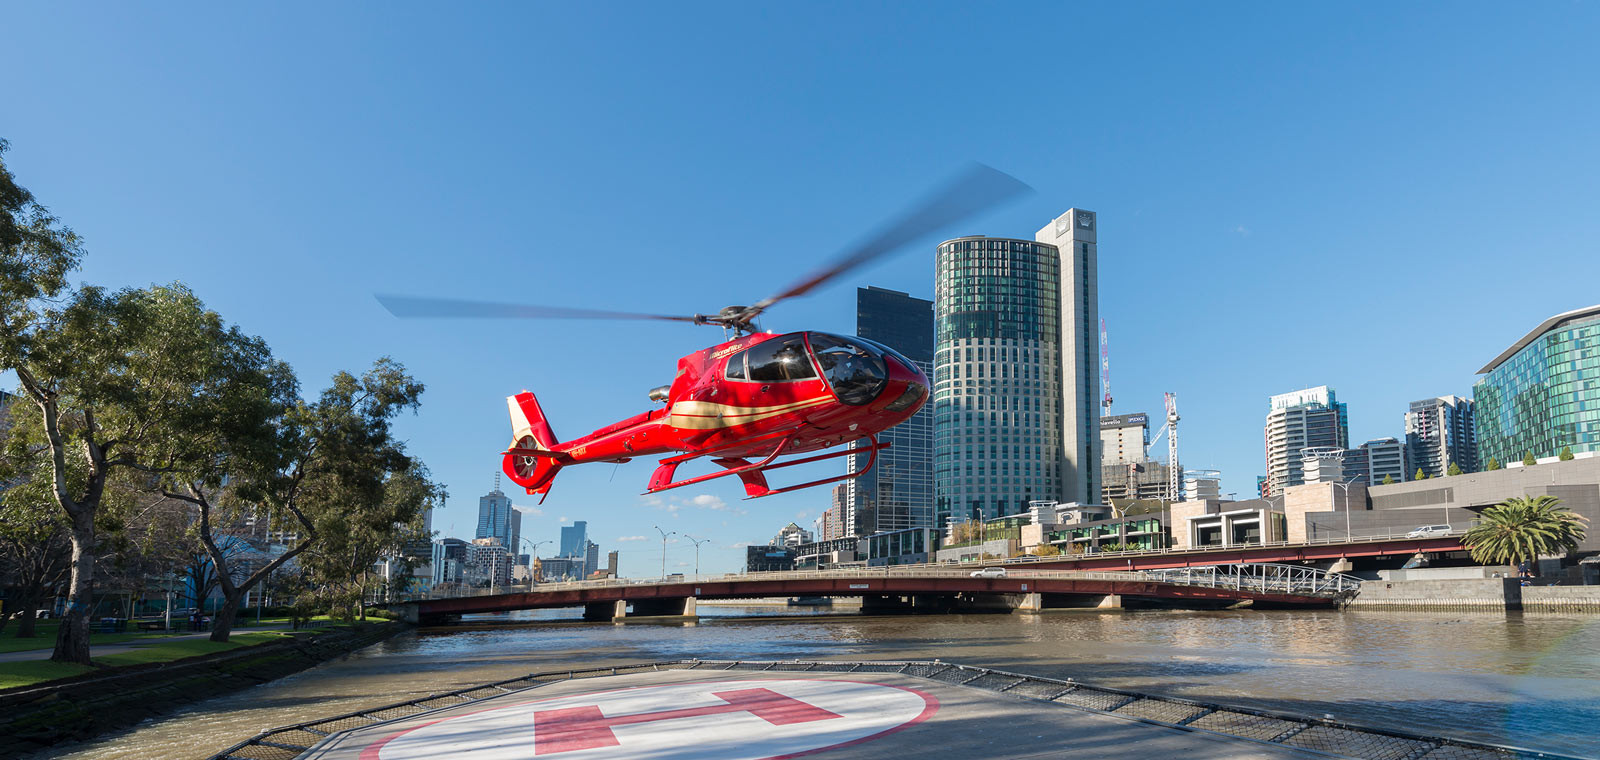 Melbourne Canada Helicopter Rides